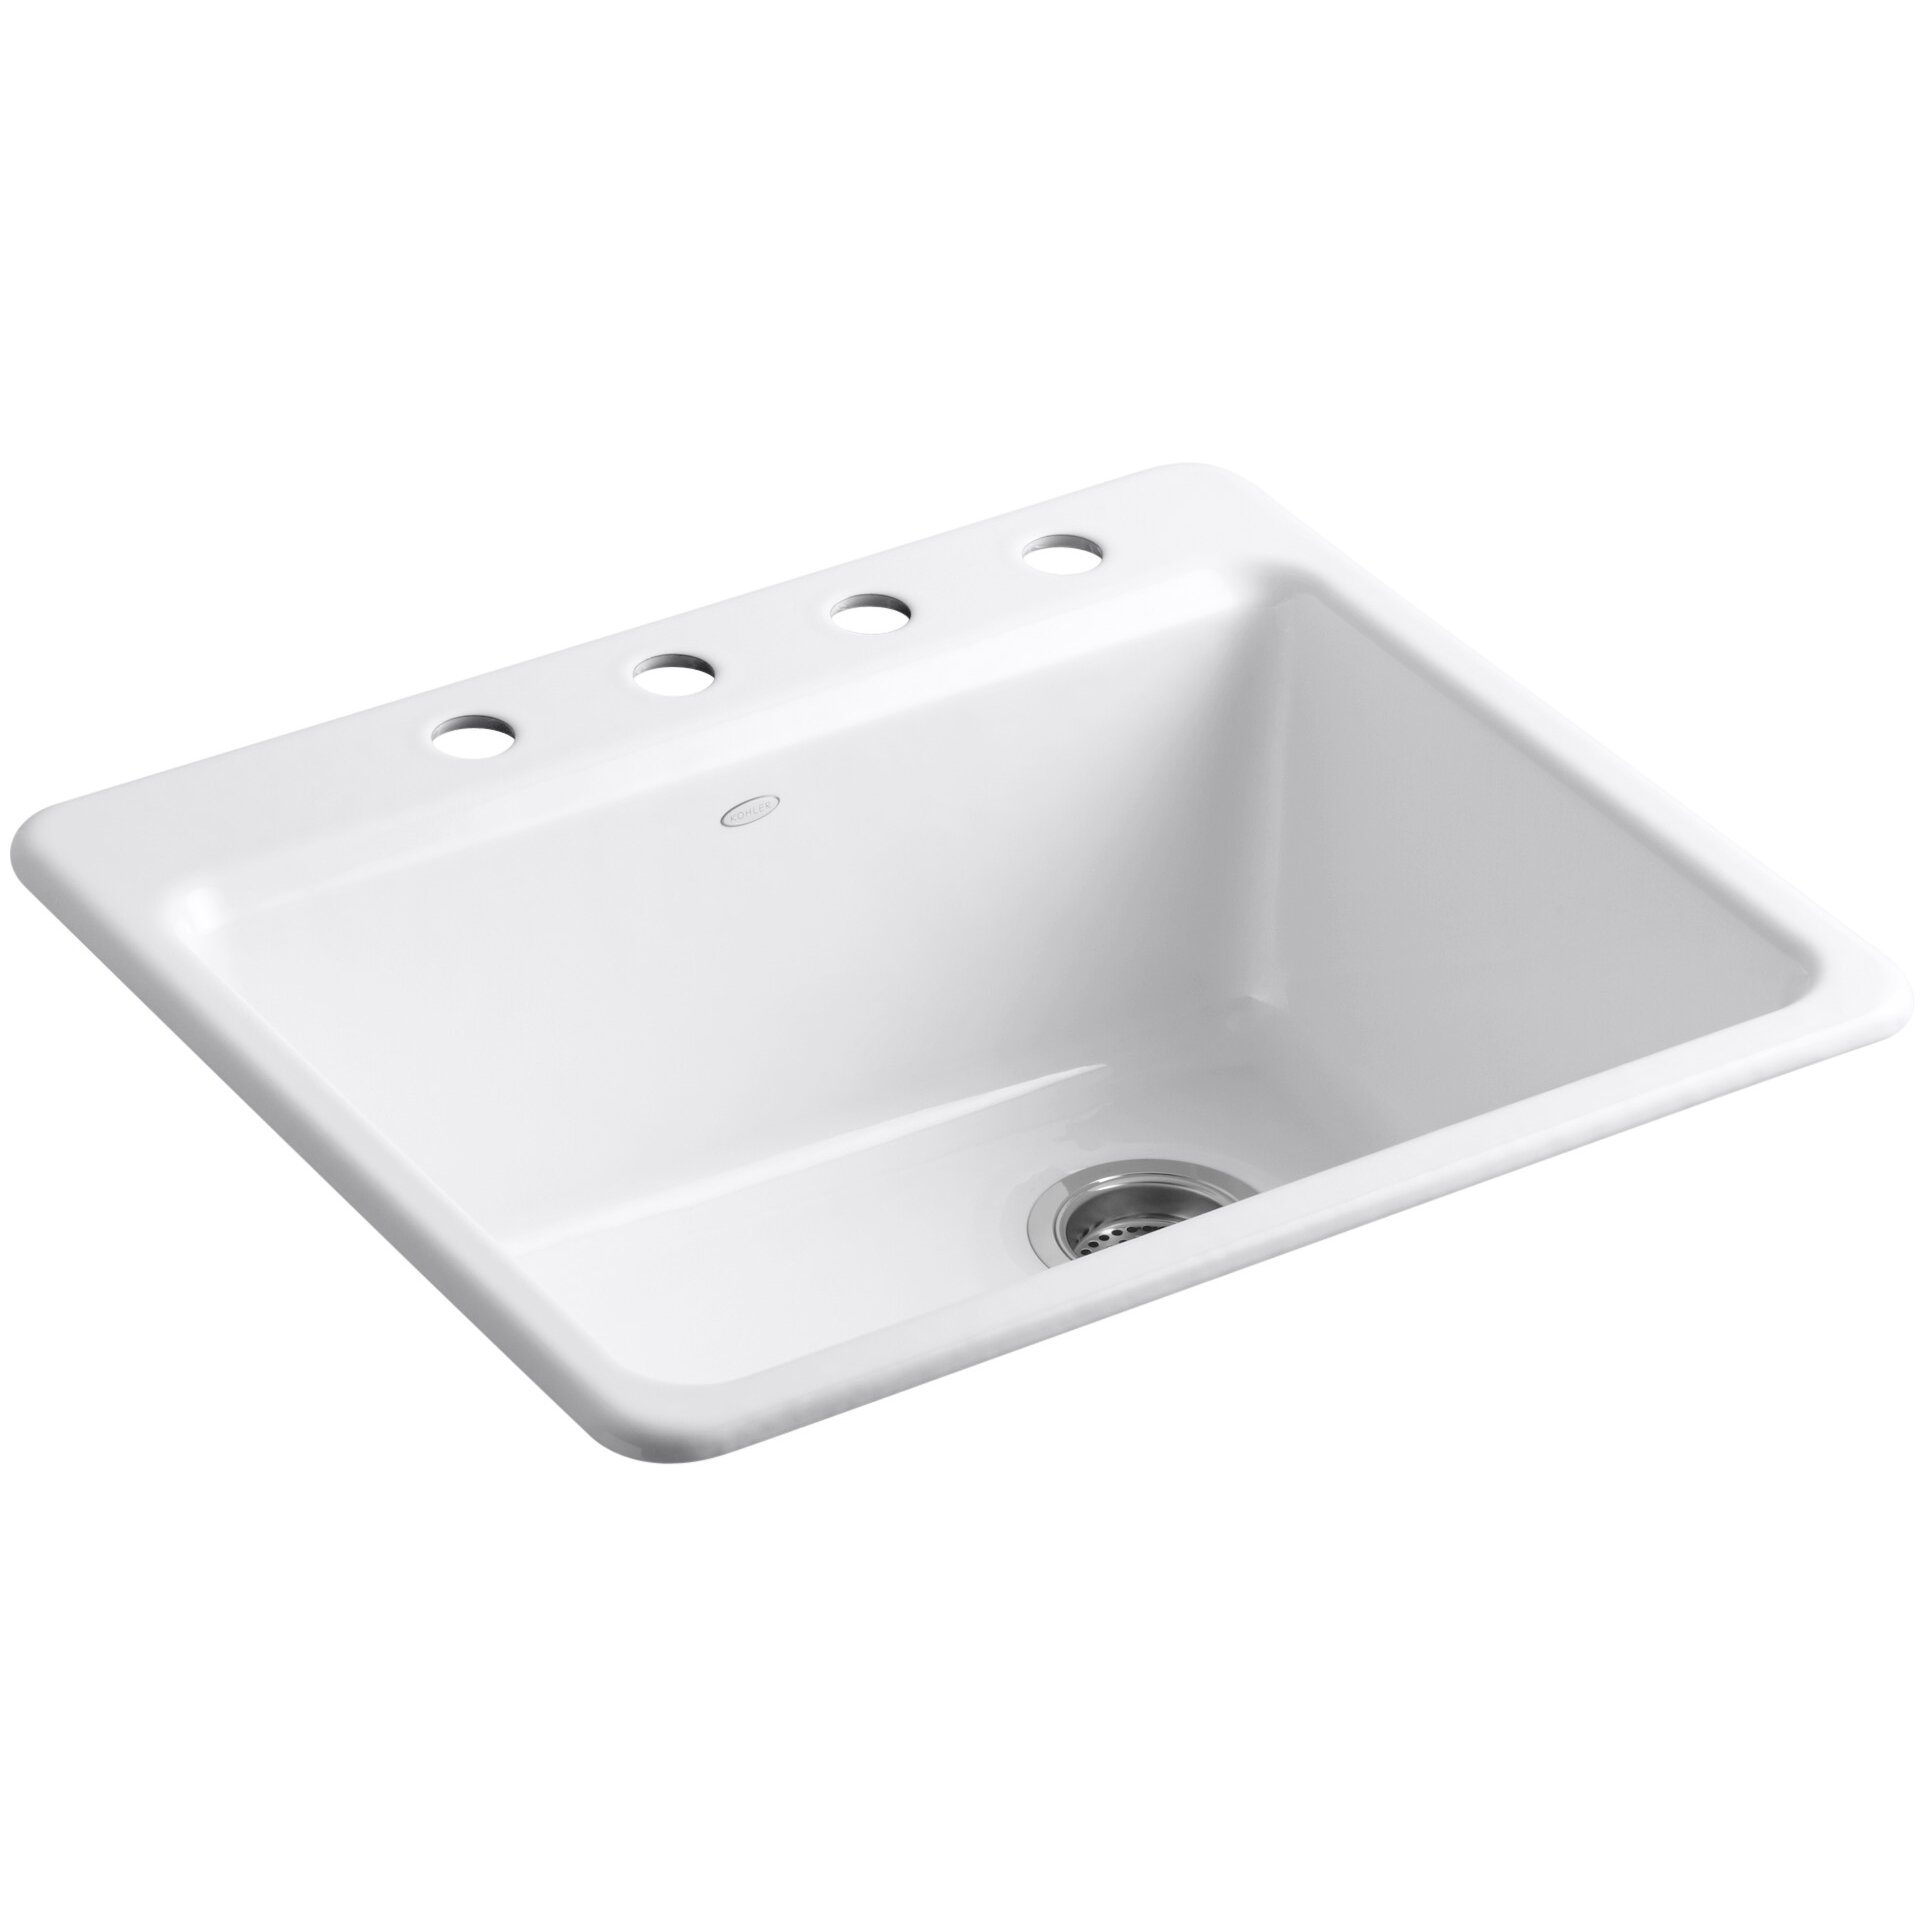 kitchen sink single bowl top mount kohler riverby 25 quot x 22 quot x 9 5 8 quot top mount single bowl 9568